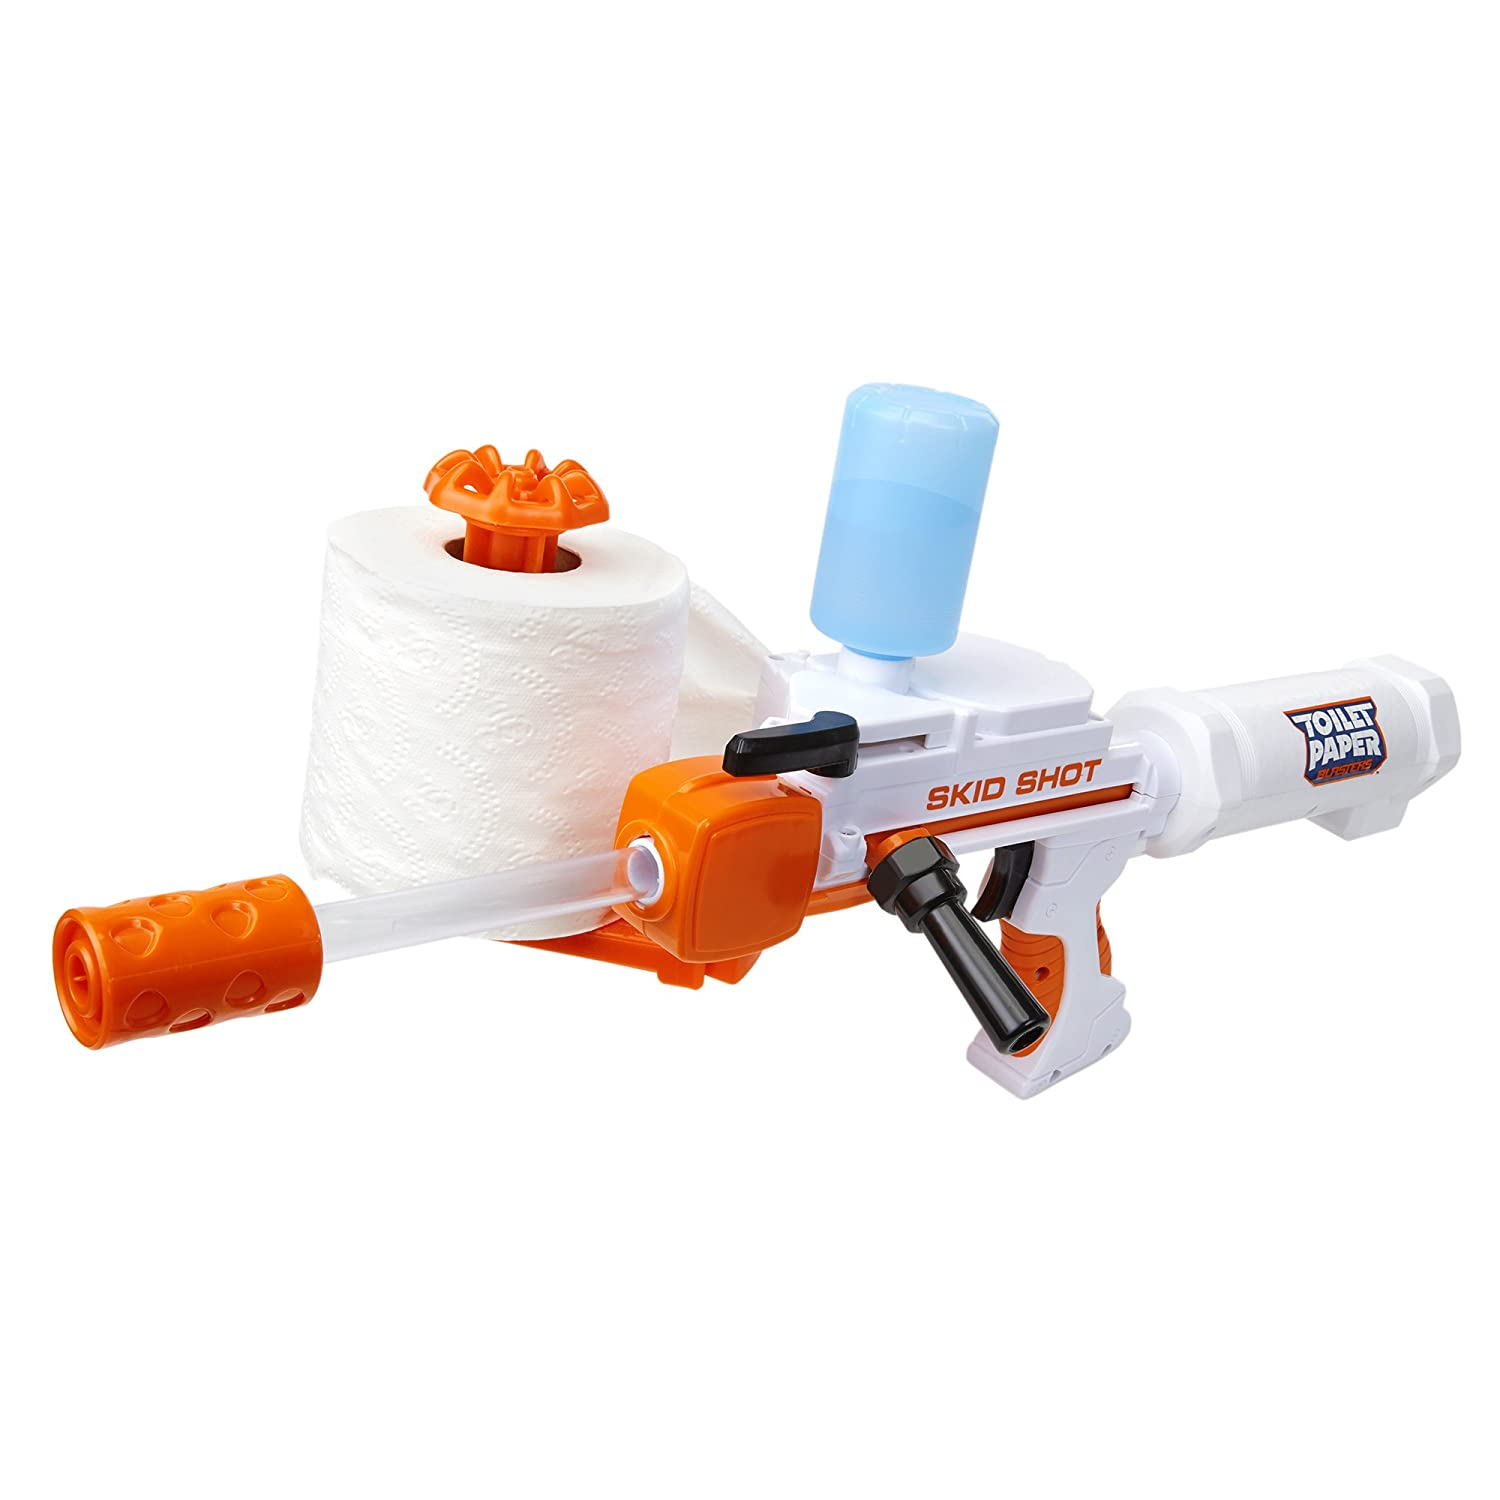 Awesome Gift Idea for him the Skid Shot Toilet Roll Blaster